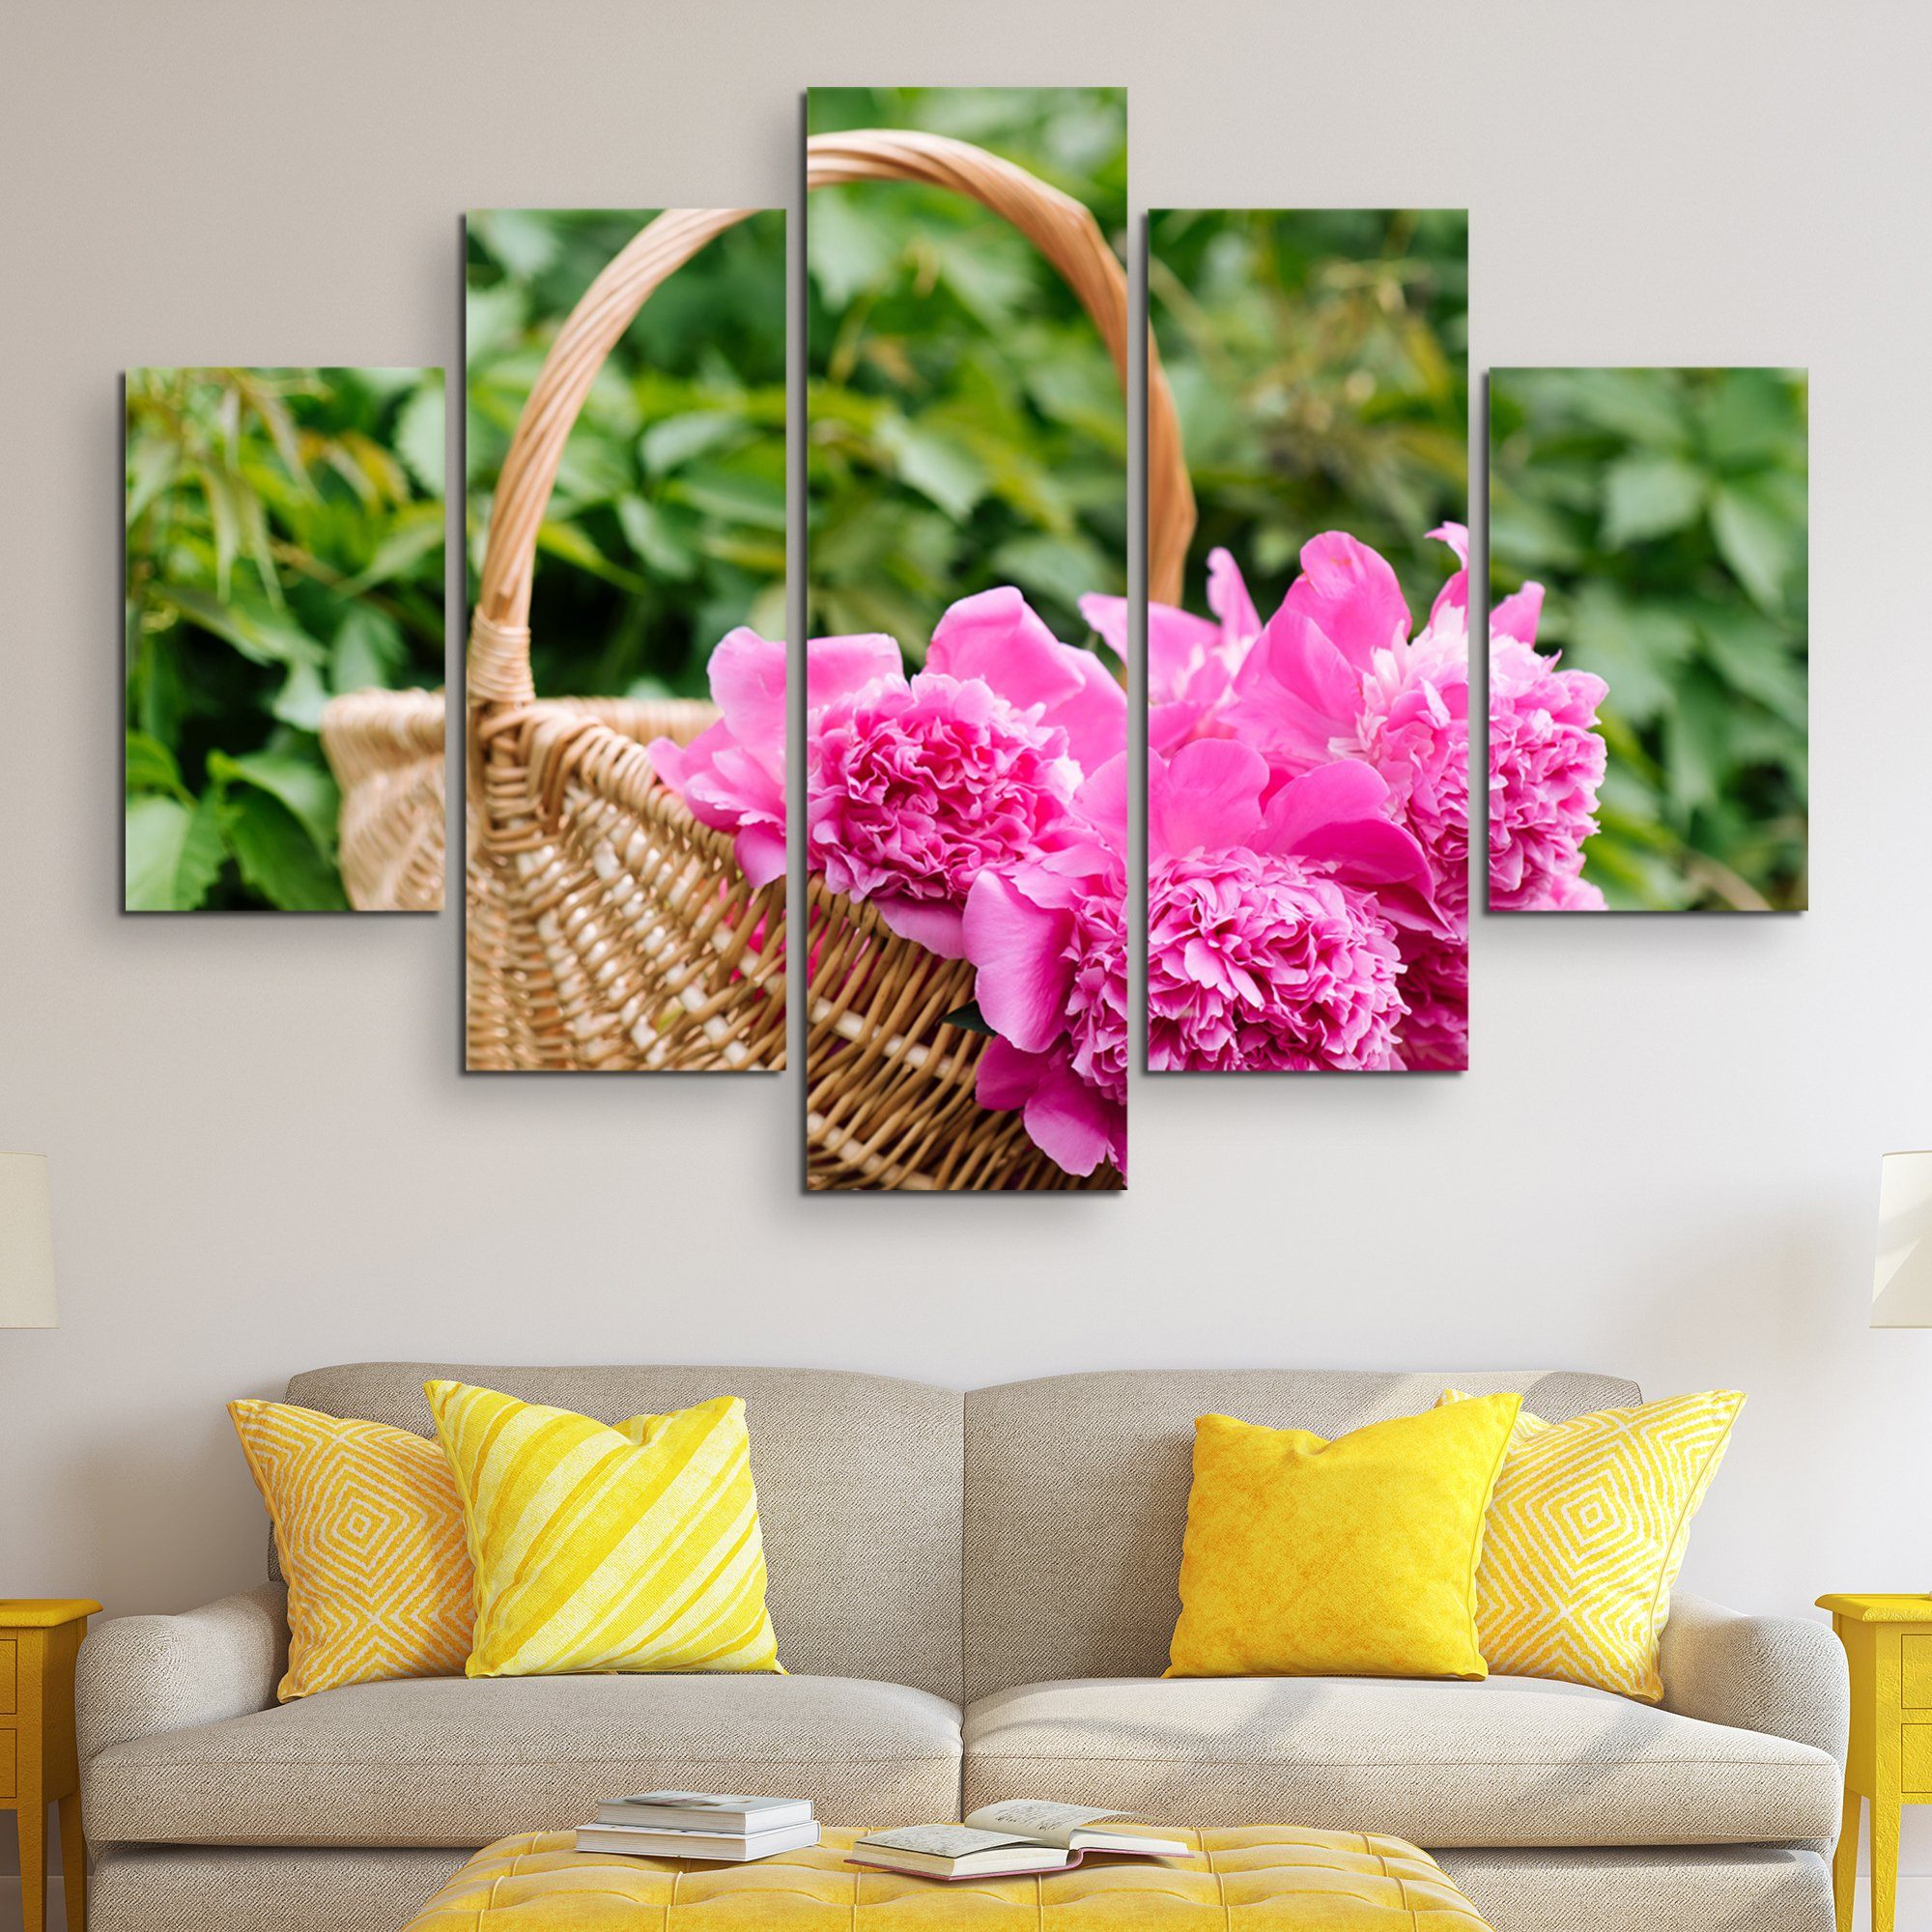 5 piece Peonies In A Basket wall art